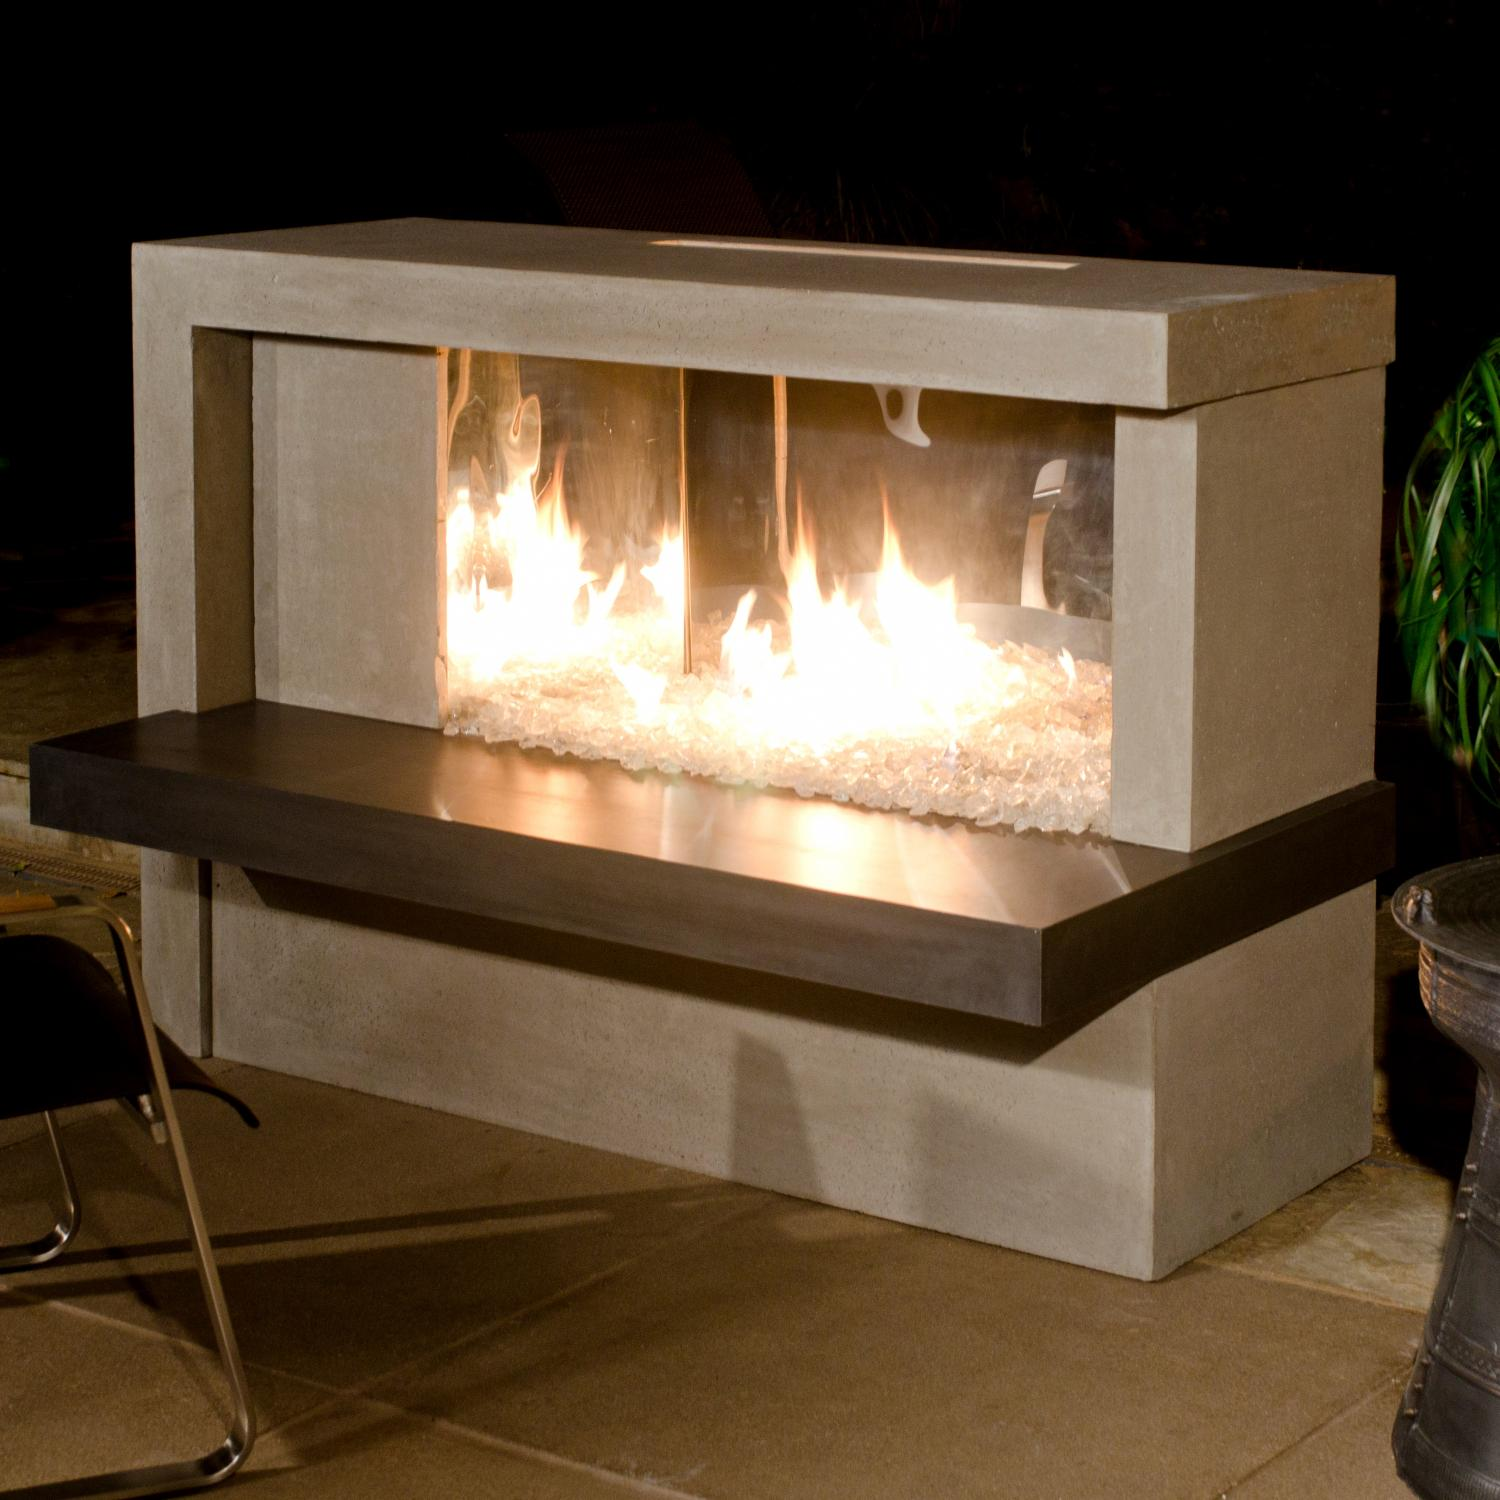 American Fyre Designs Manhattan 59-inch Outdoor Propane Gas Fireplace - Cafe Blanco